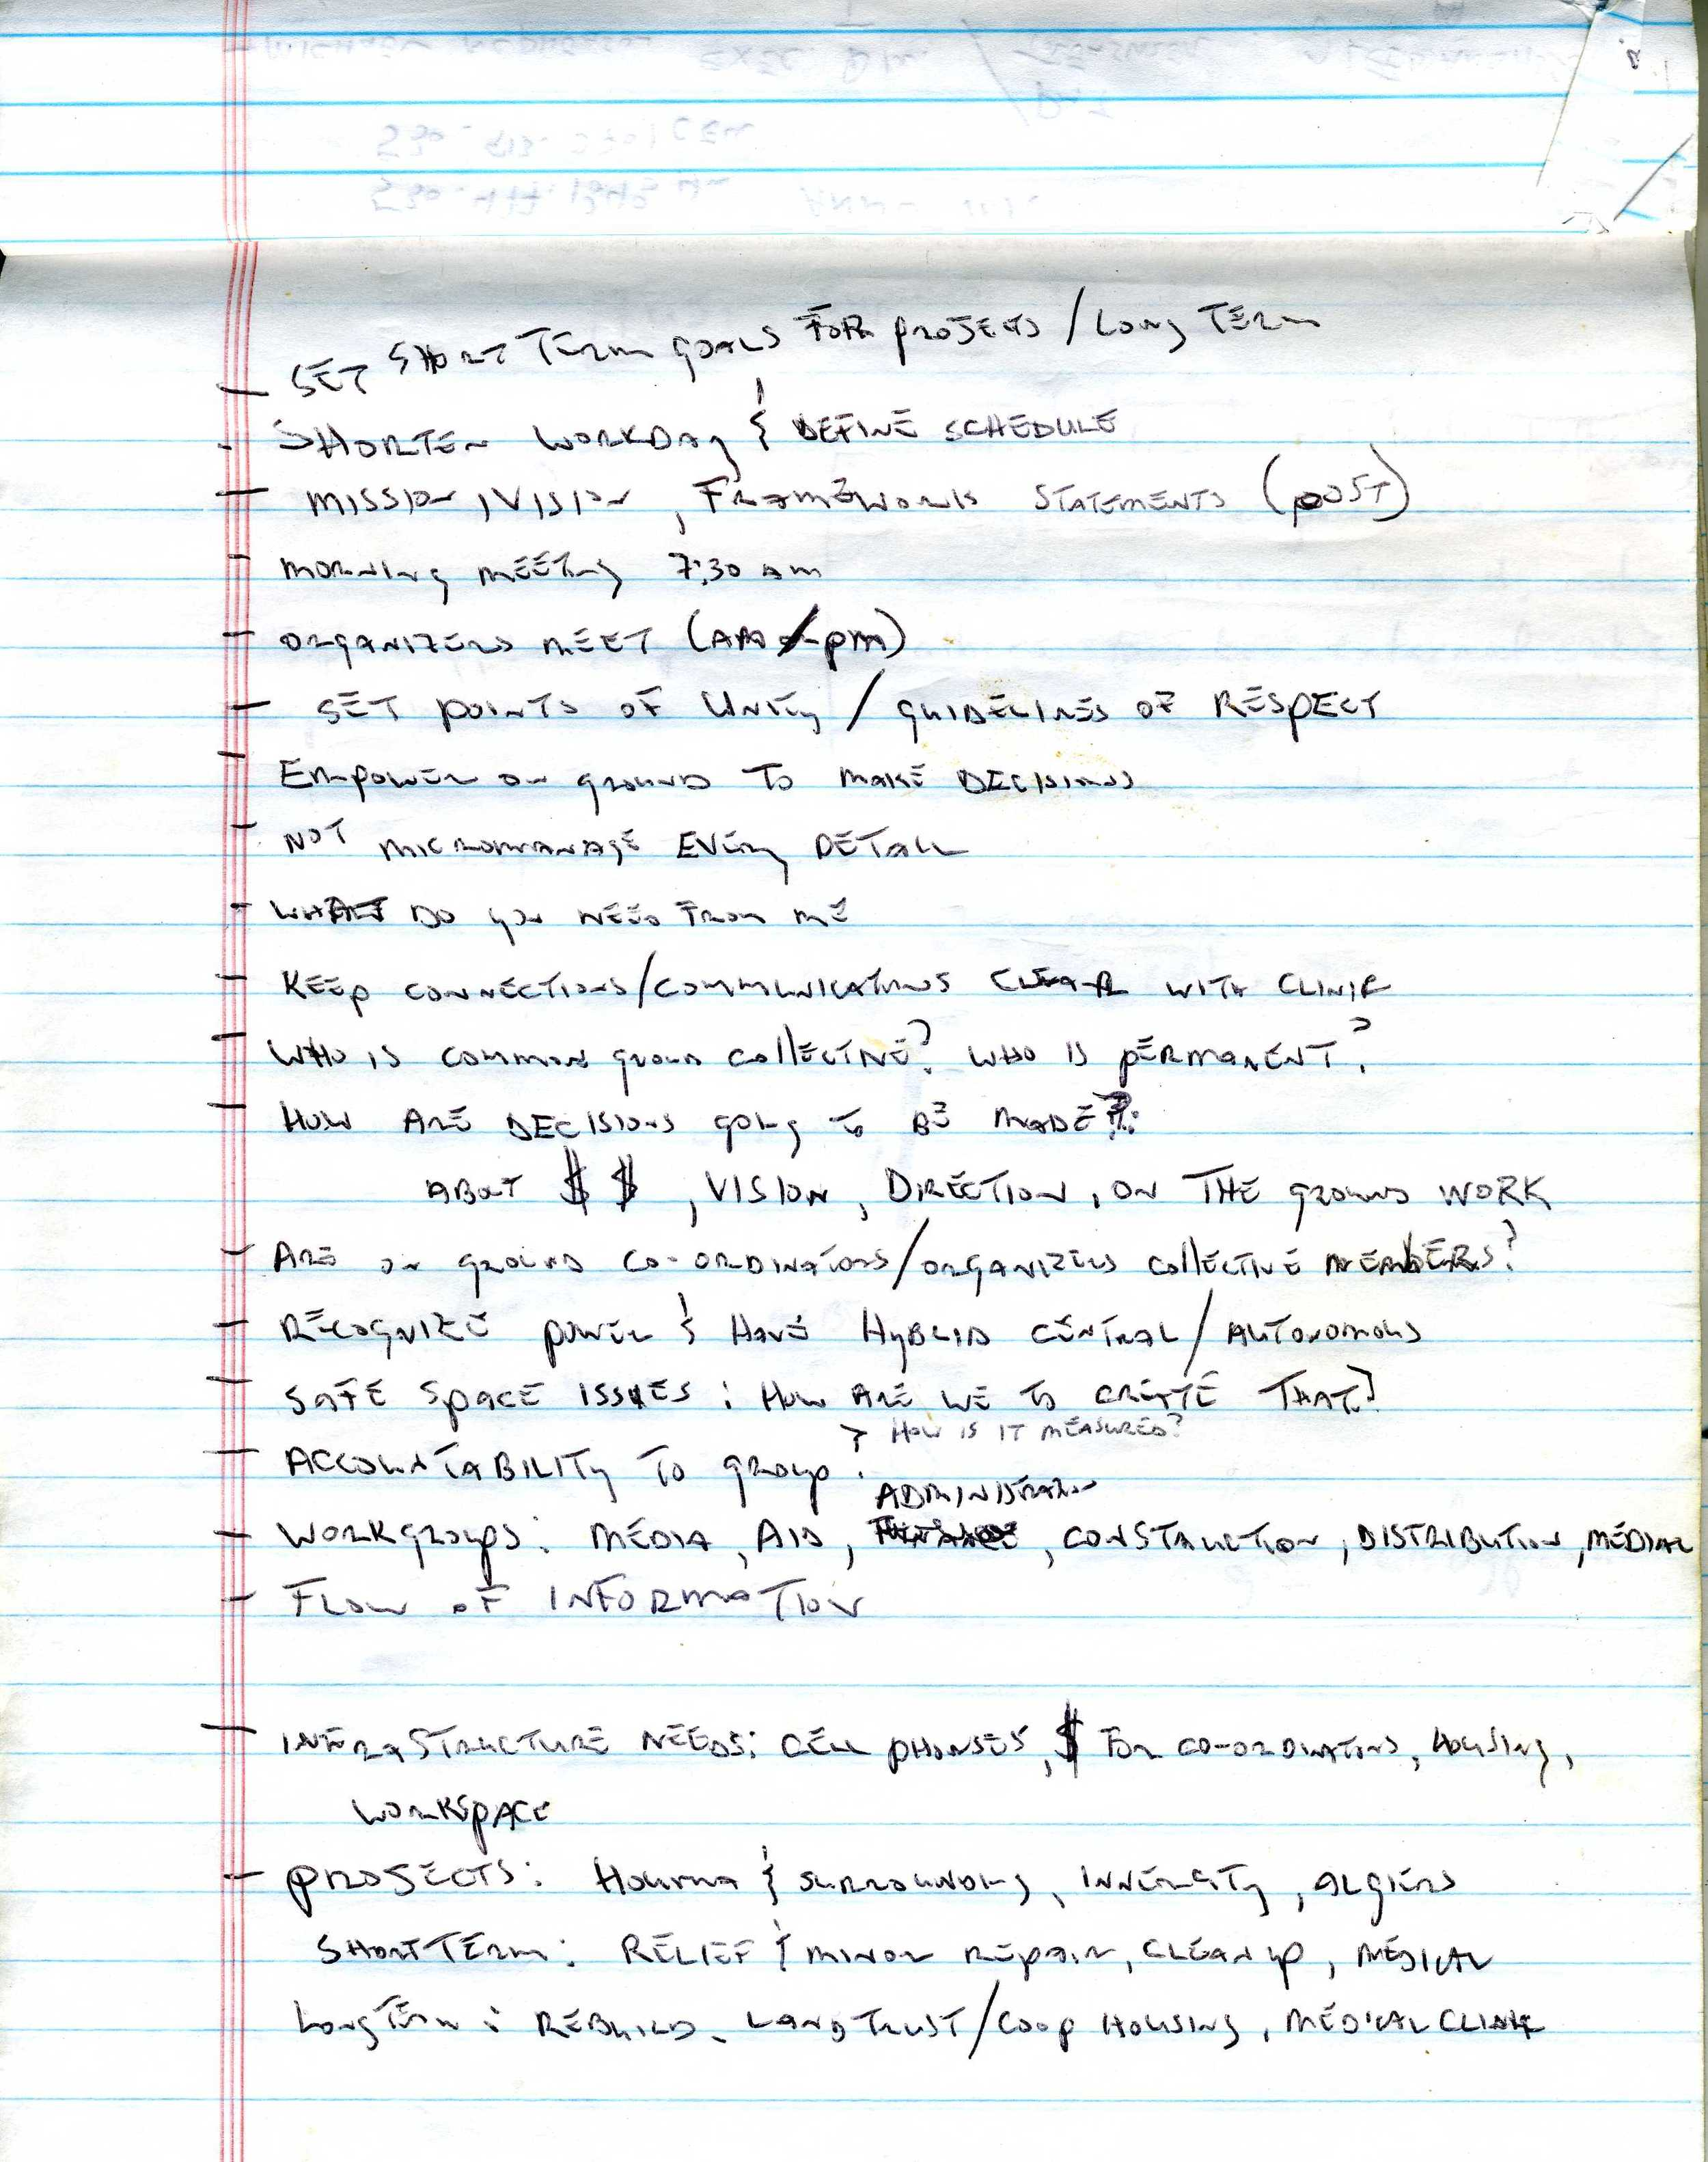 CG list of needs project sept 05.jpg